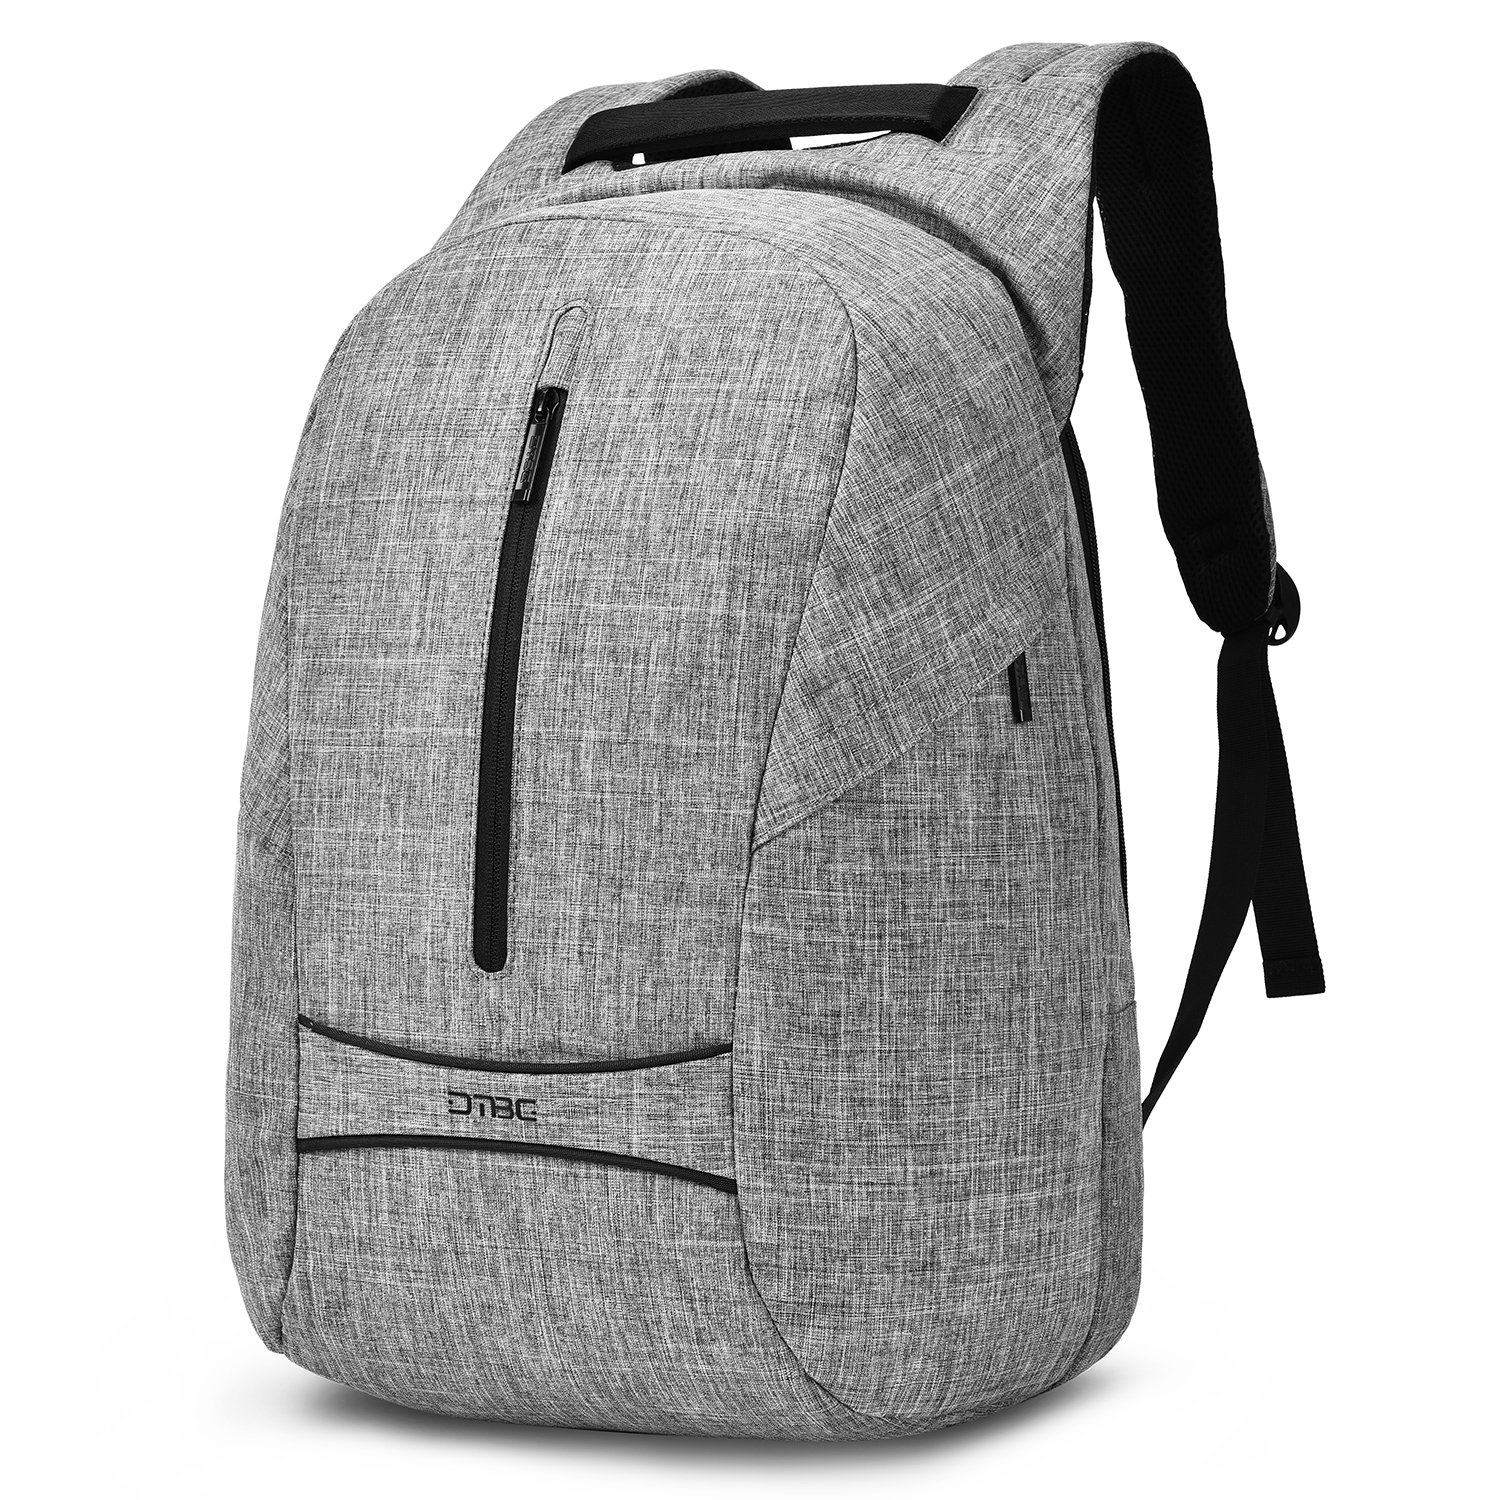 17.3 inch Anti Theft Laptop Backpack,Spacious Multi Function Water-Resistant Computer Backpack Knapsack College School Bag for MacBook,Surfacebook. Chrombook Use (Grey)